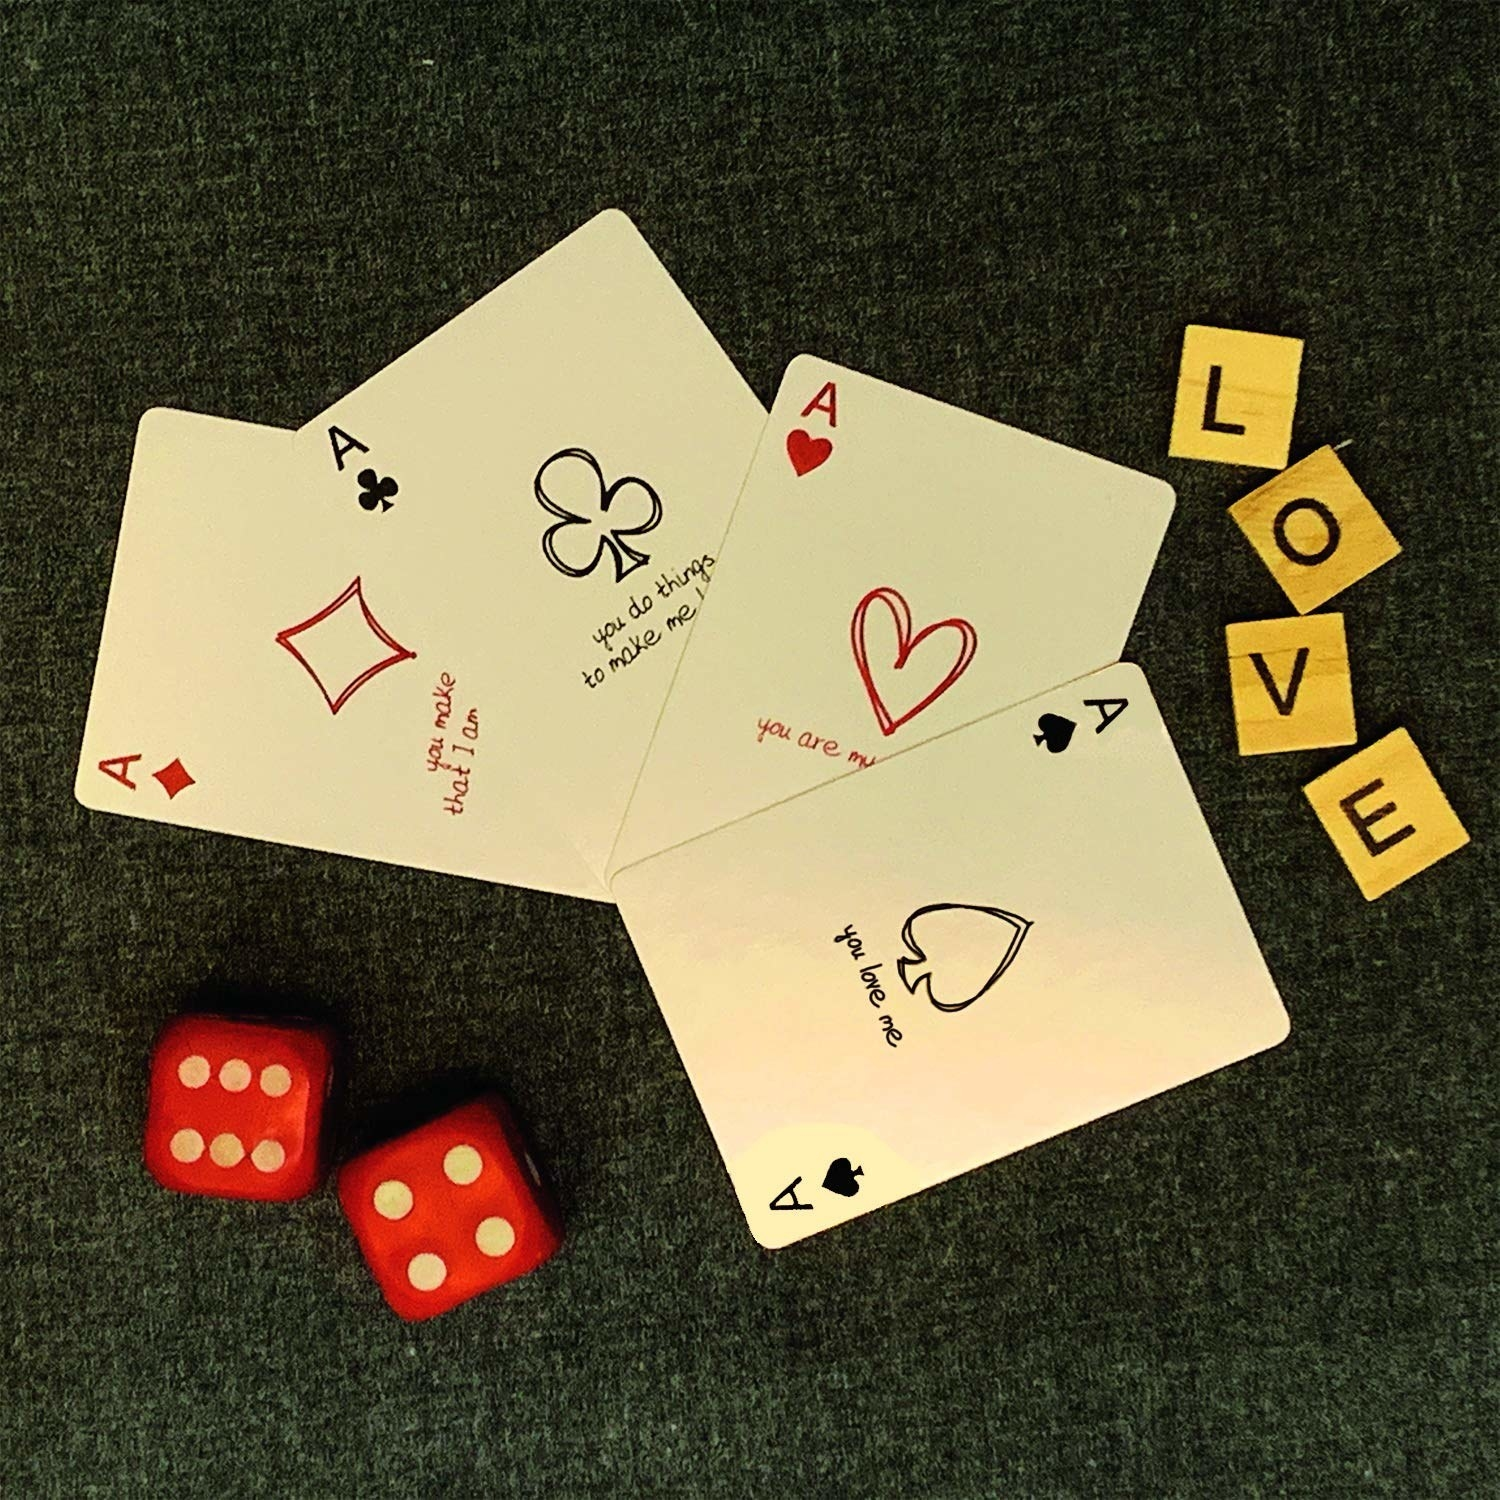 The cards pictured with 2 red dice and scrabble tiles that spell out the word 'love'.